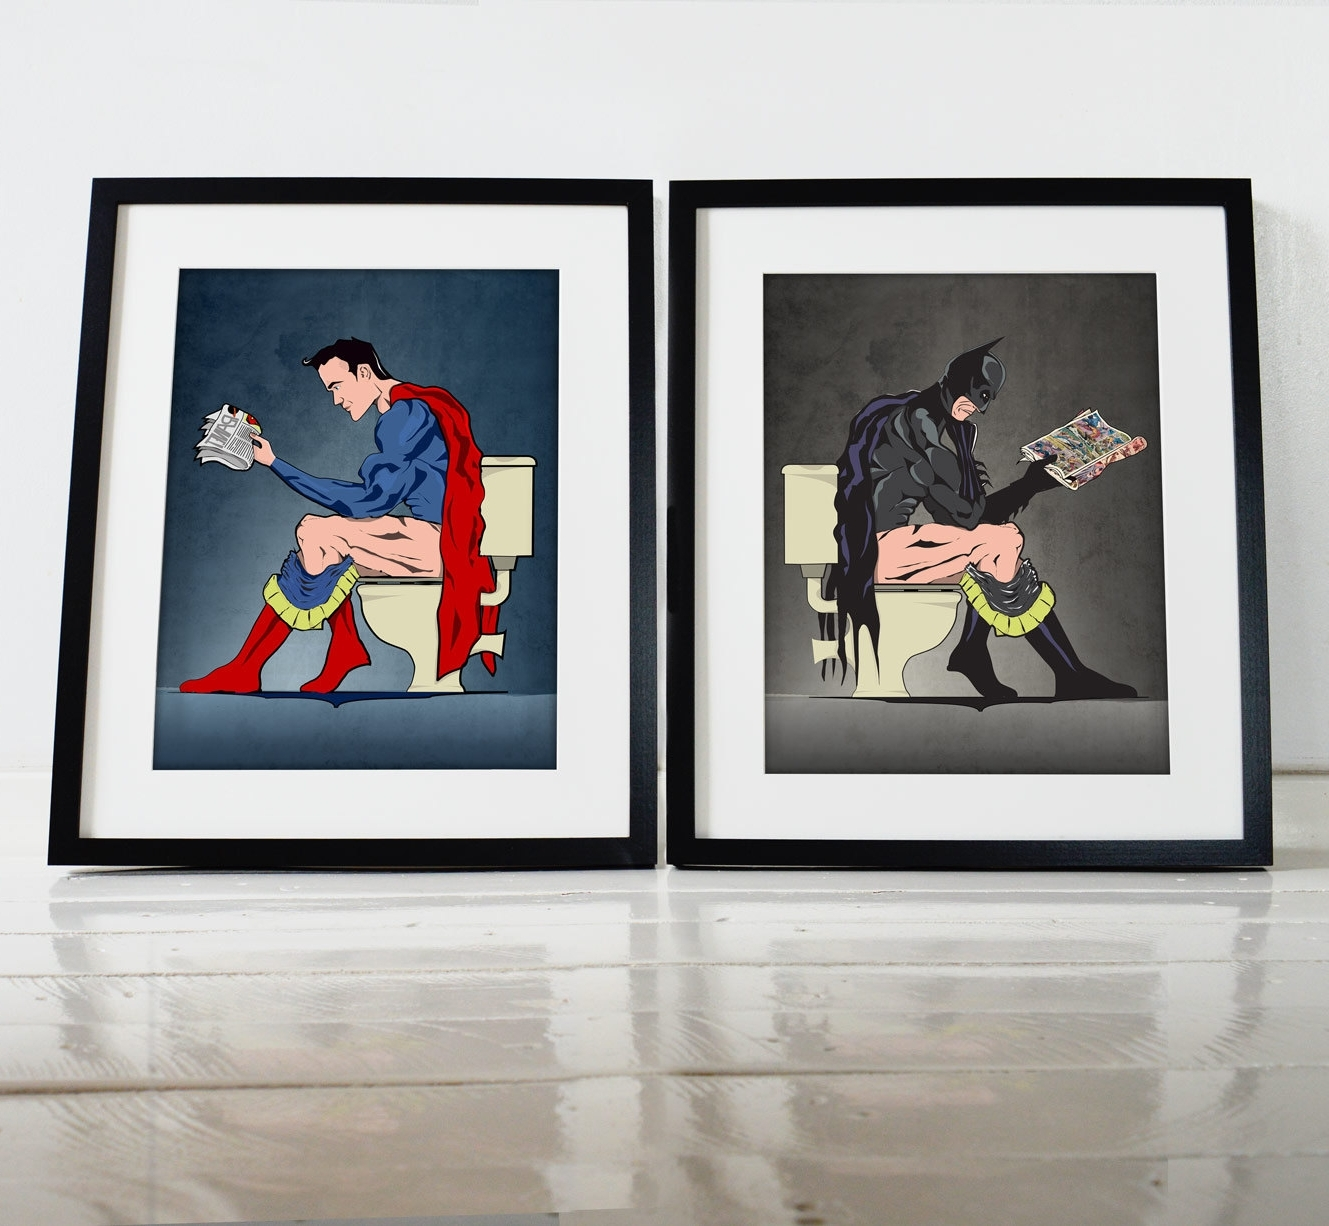 Skillful Wall Art Posters With Batman And Superhero On The Toilet Inside Trendy Framed Comic Art Prints (Gallery 4 of 15)